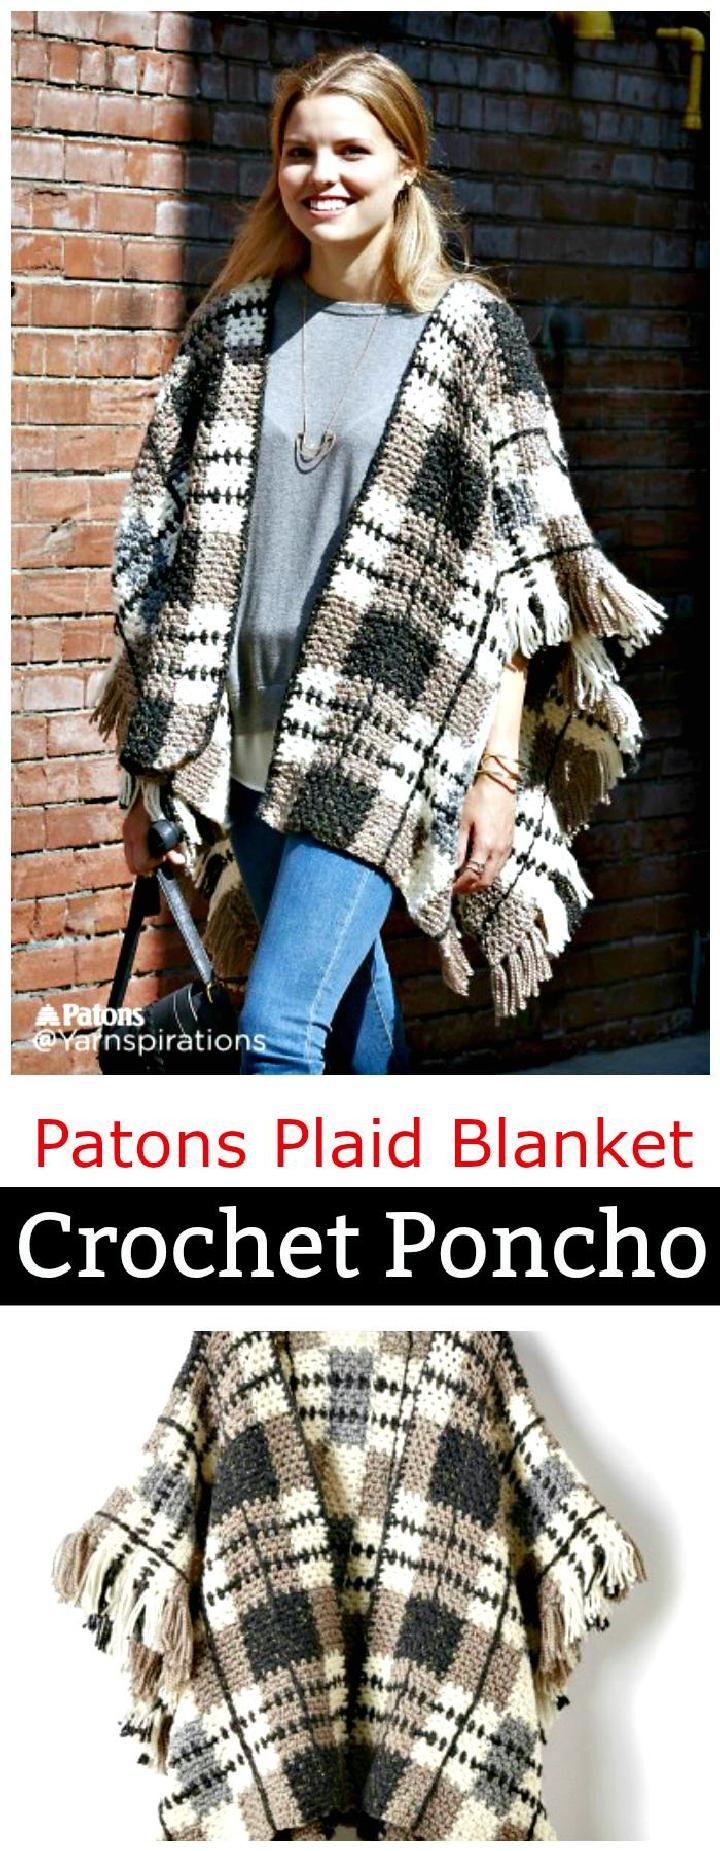 20 free crochet summer poncho patterns for womens page 2 of 3 20 free crochet summer poncho patterns for womens page 2 of 3 bankloansurffo Images